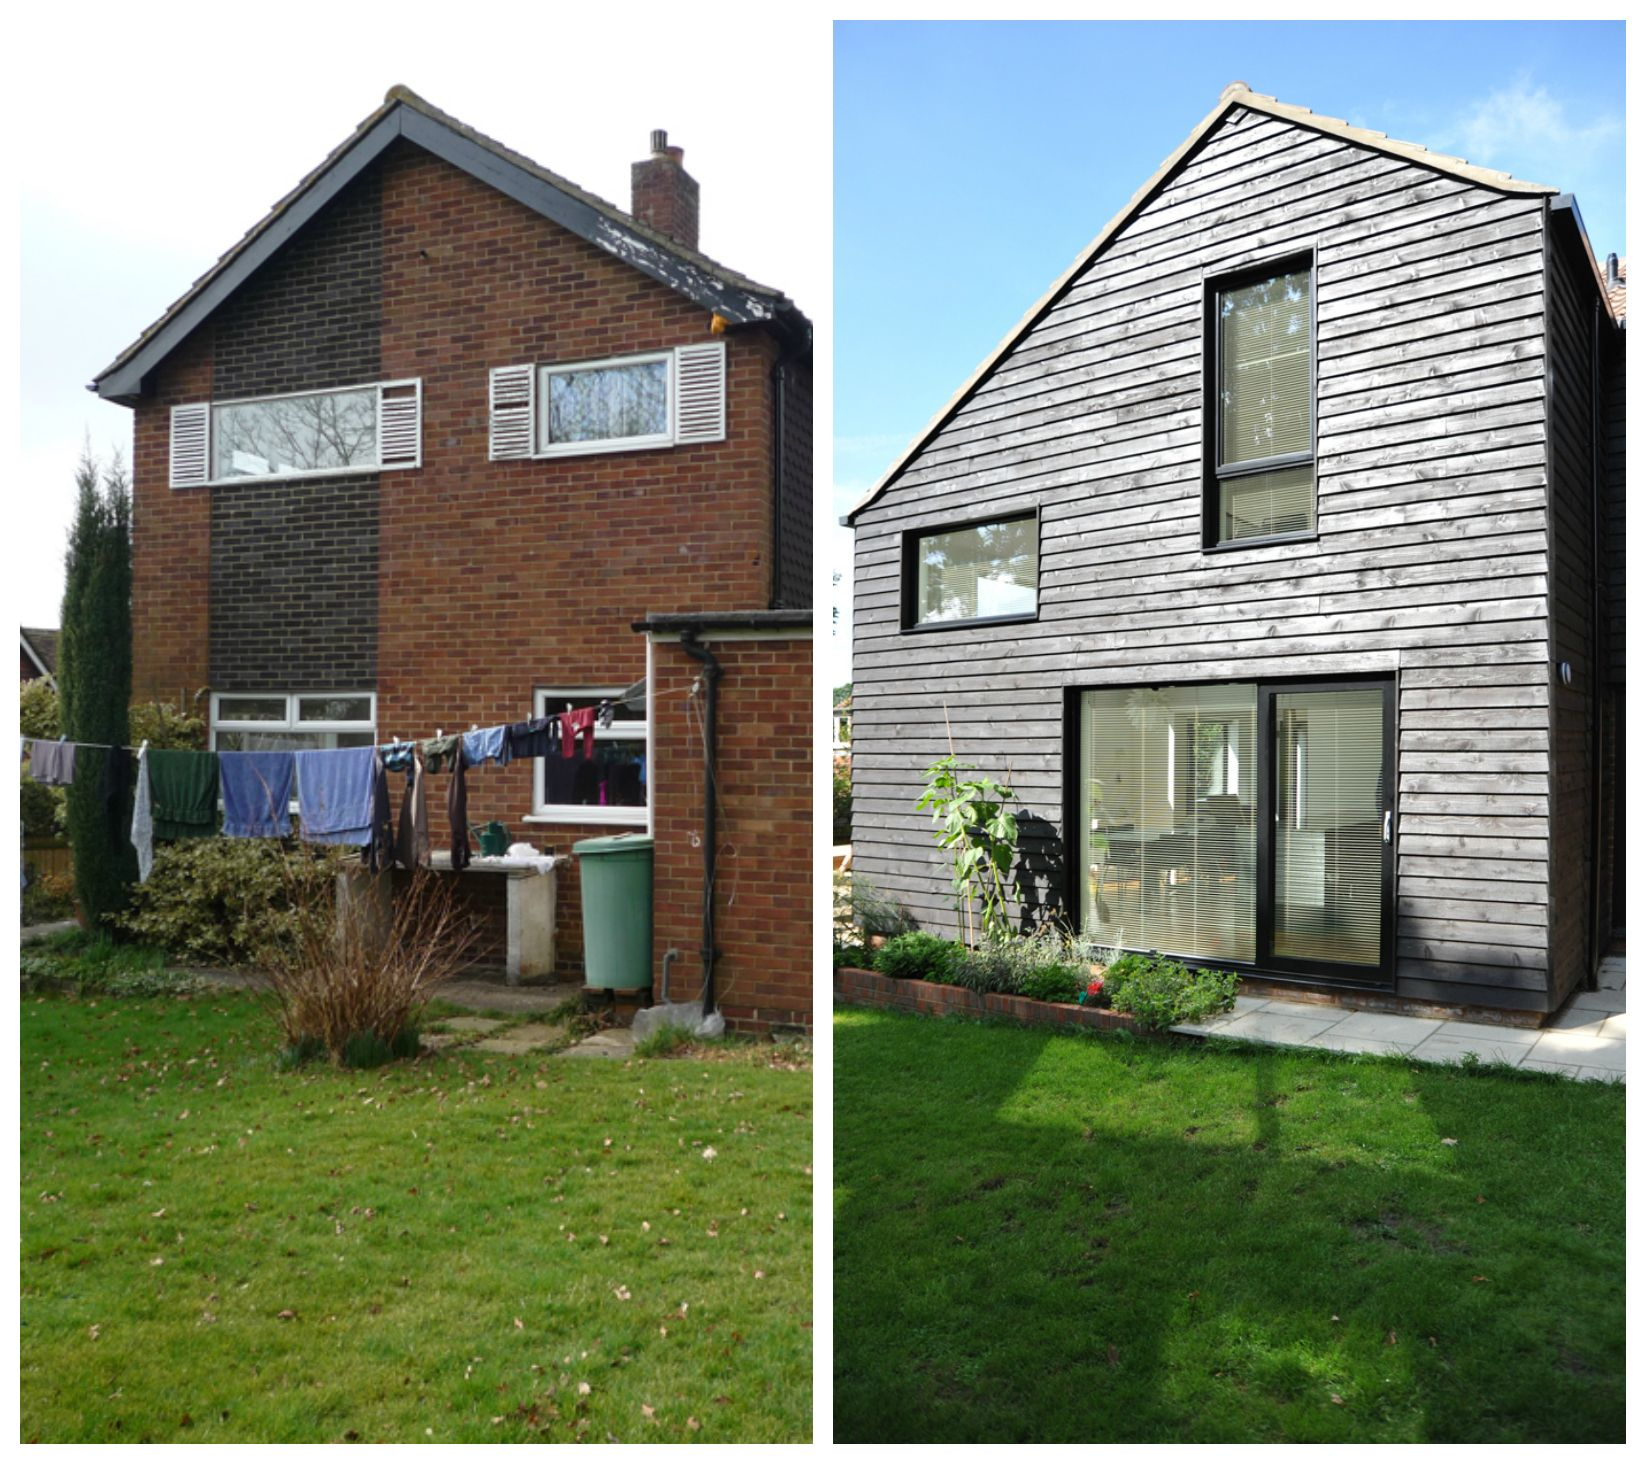 A Spectacular Renovation In Forest Hill London: Before And After The Addition Of A 2 Storey Extension